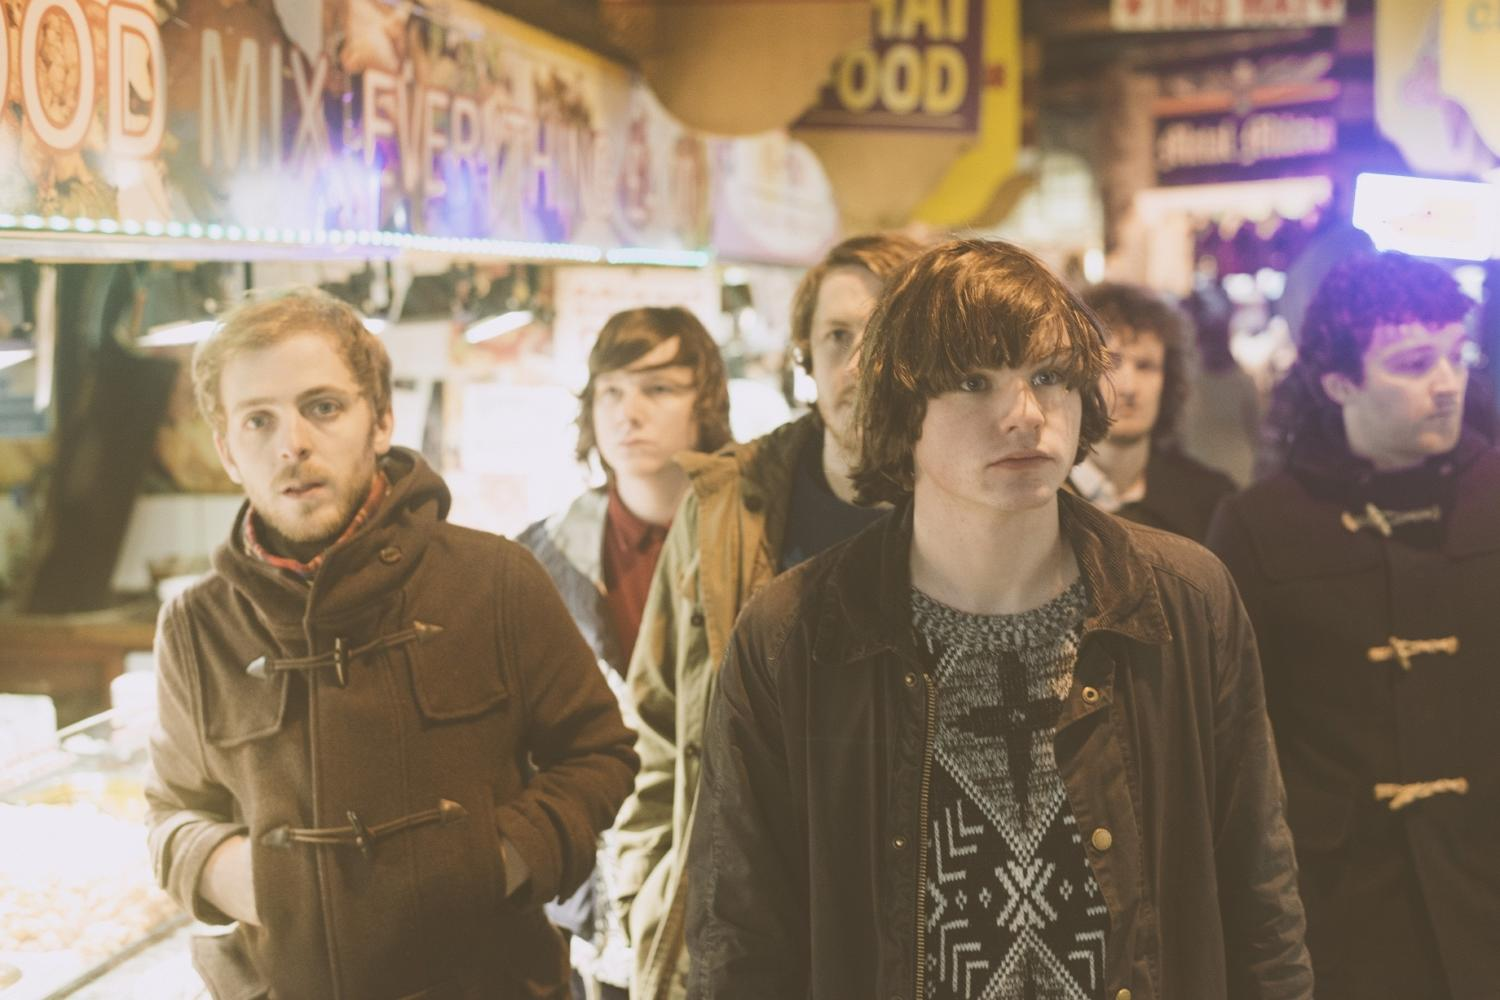 Neon Waltz debut new 'Perfect Frame' track